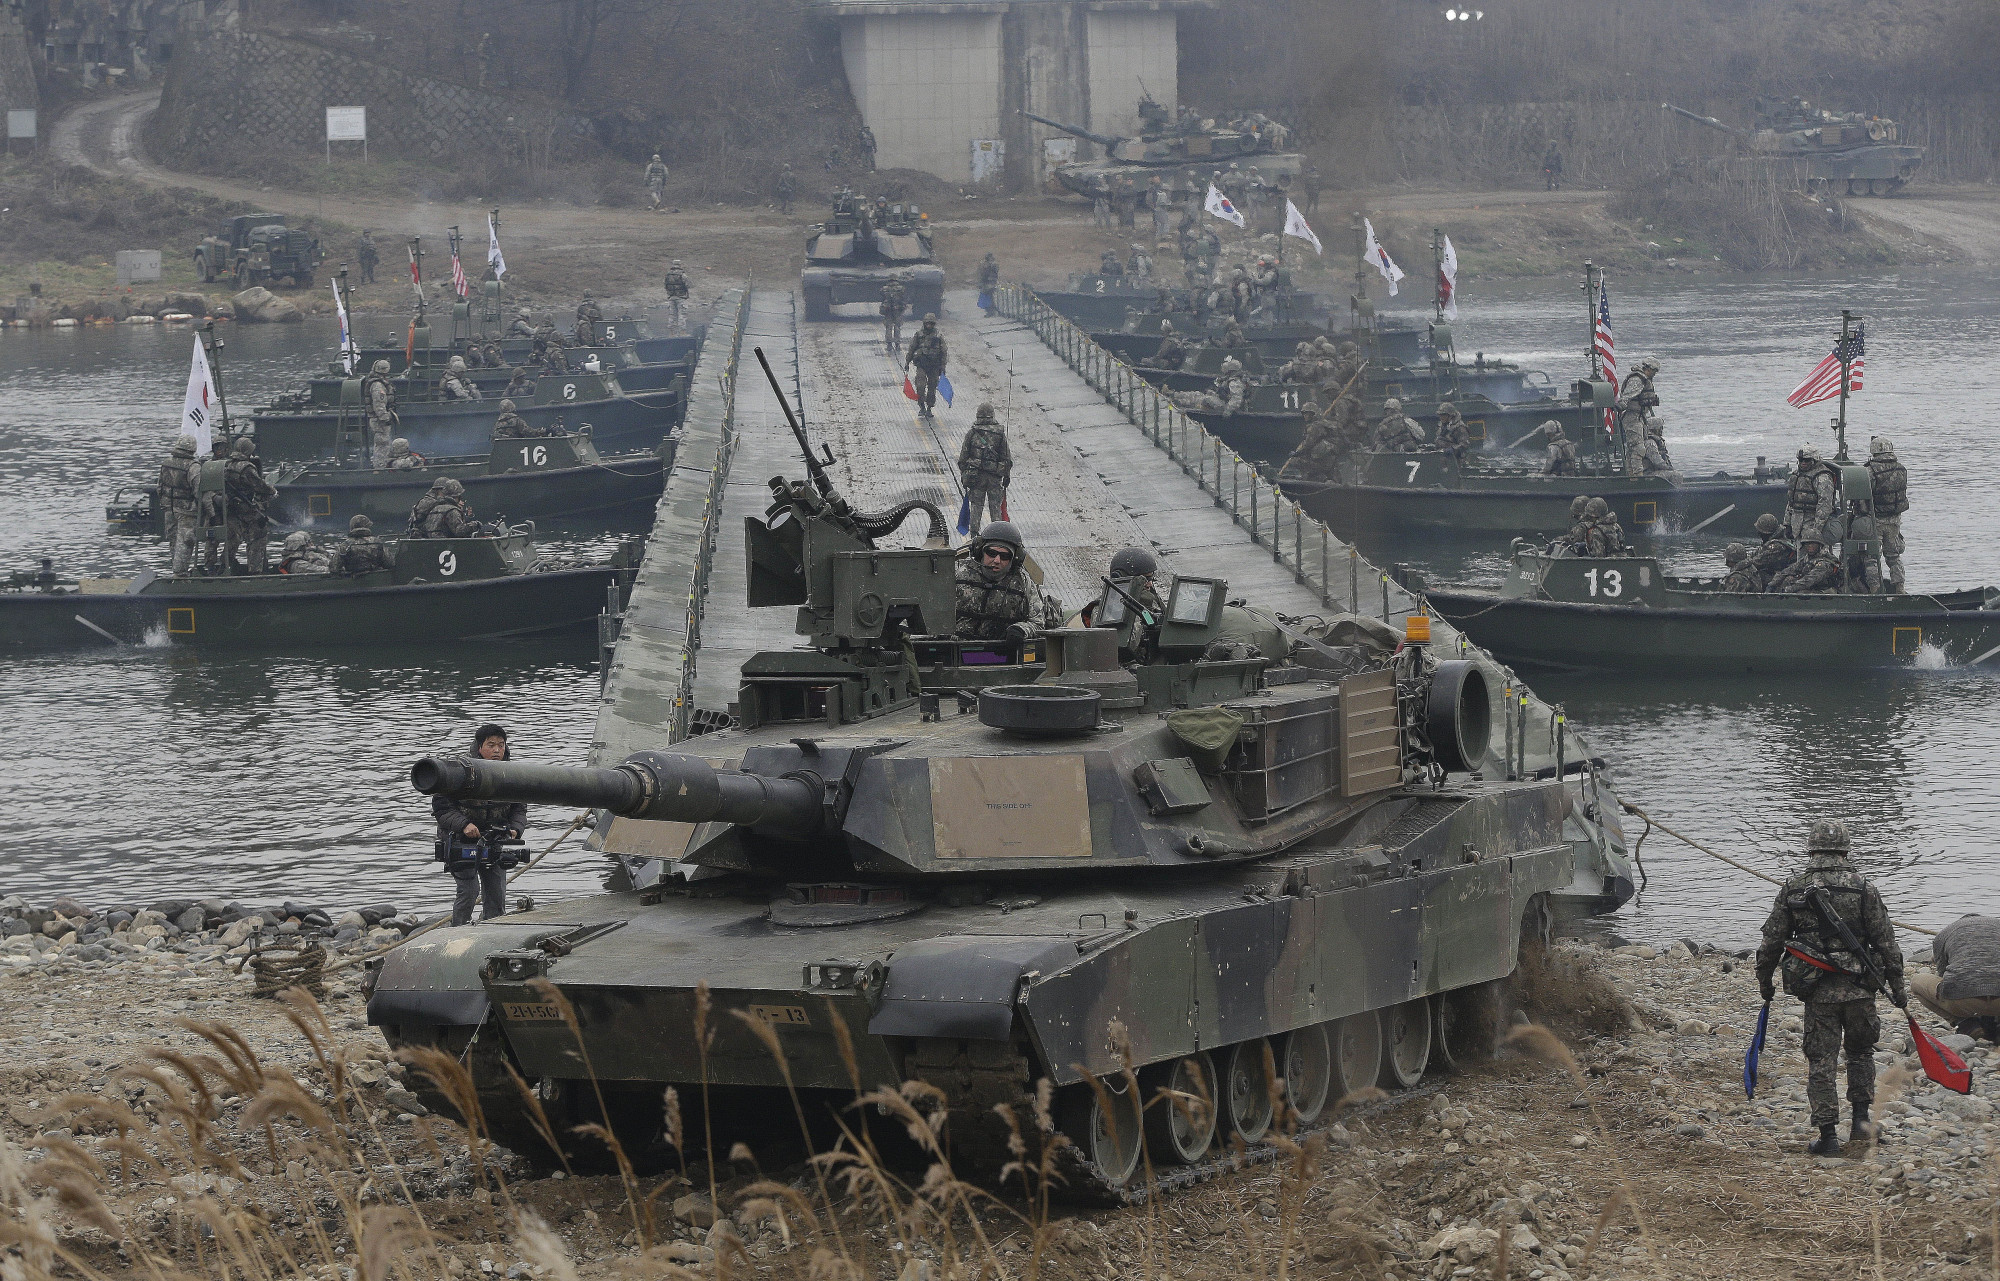 U.S. tanks cross the Hantan River during a river-crossing operation, part of an annual joint military exercise between South Korea and the United States against a possible attack from North Korea, in Yeoncheon, South Korea, last December. | AP